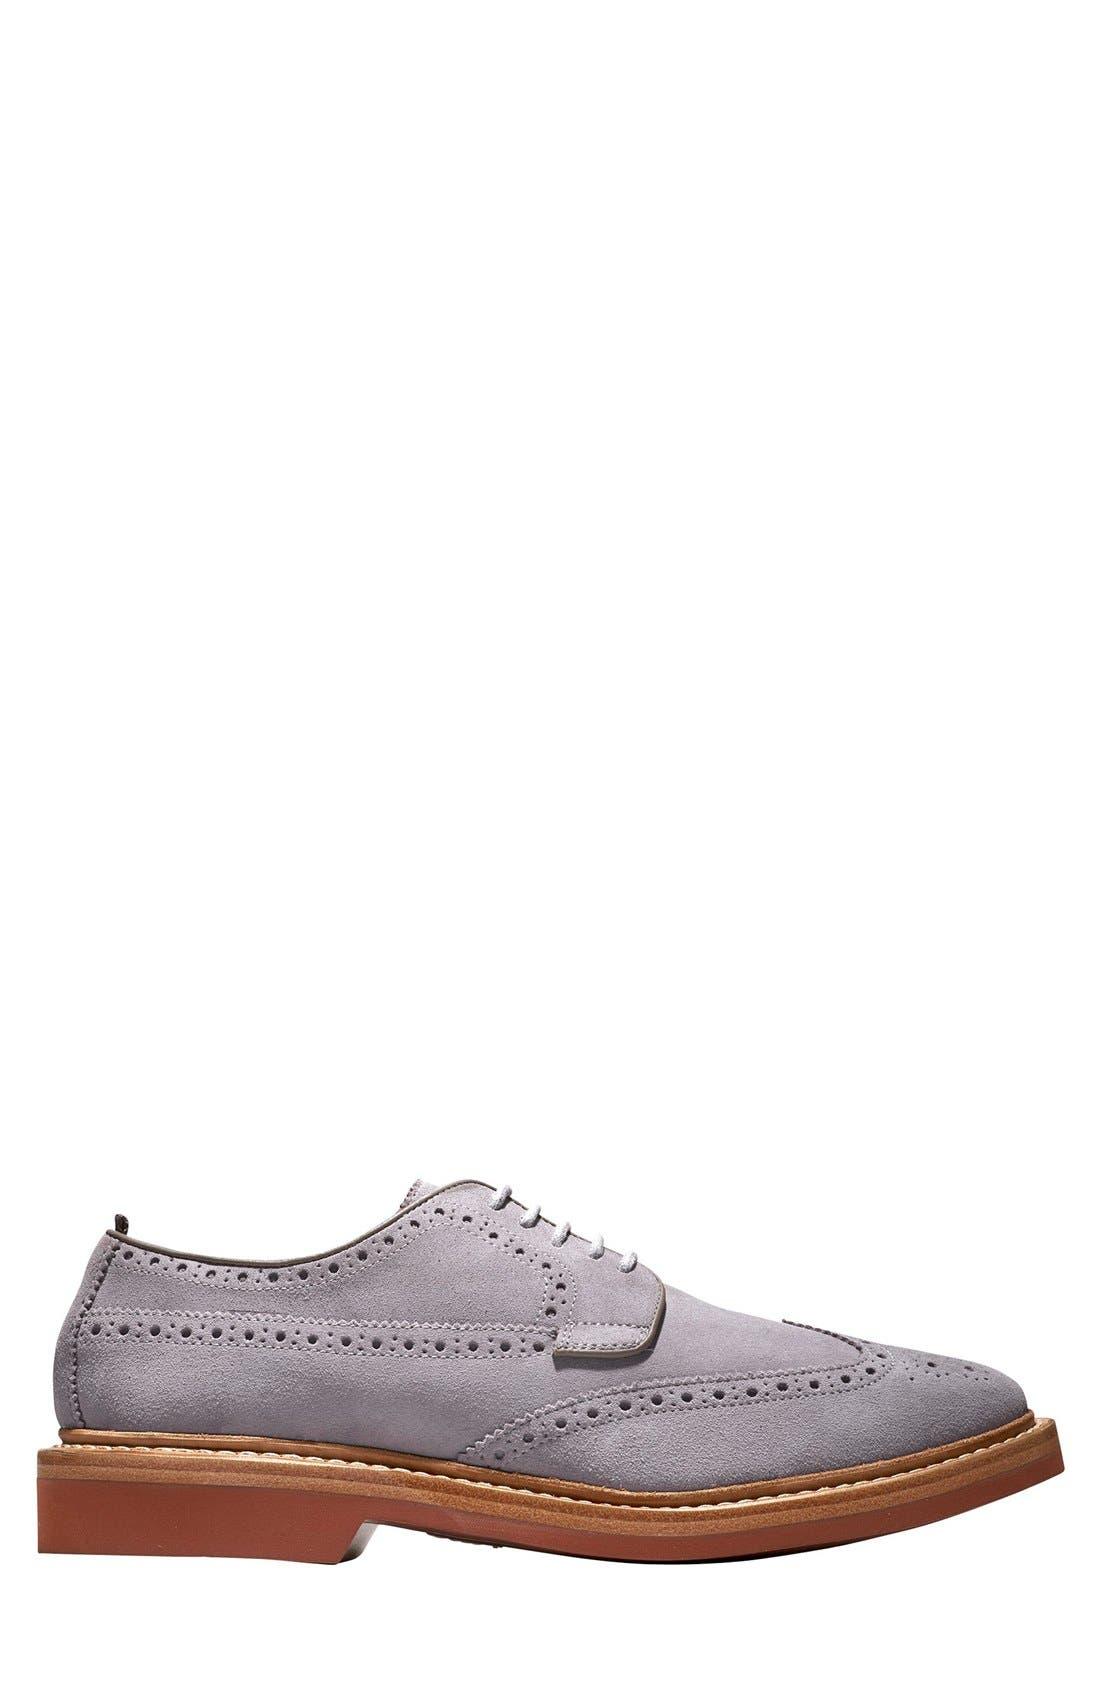 COLE HAAN & TODD SNYDER,                             'Hammond' Wingtip,                             Alternate thumbnail 5, color,                             025